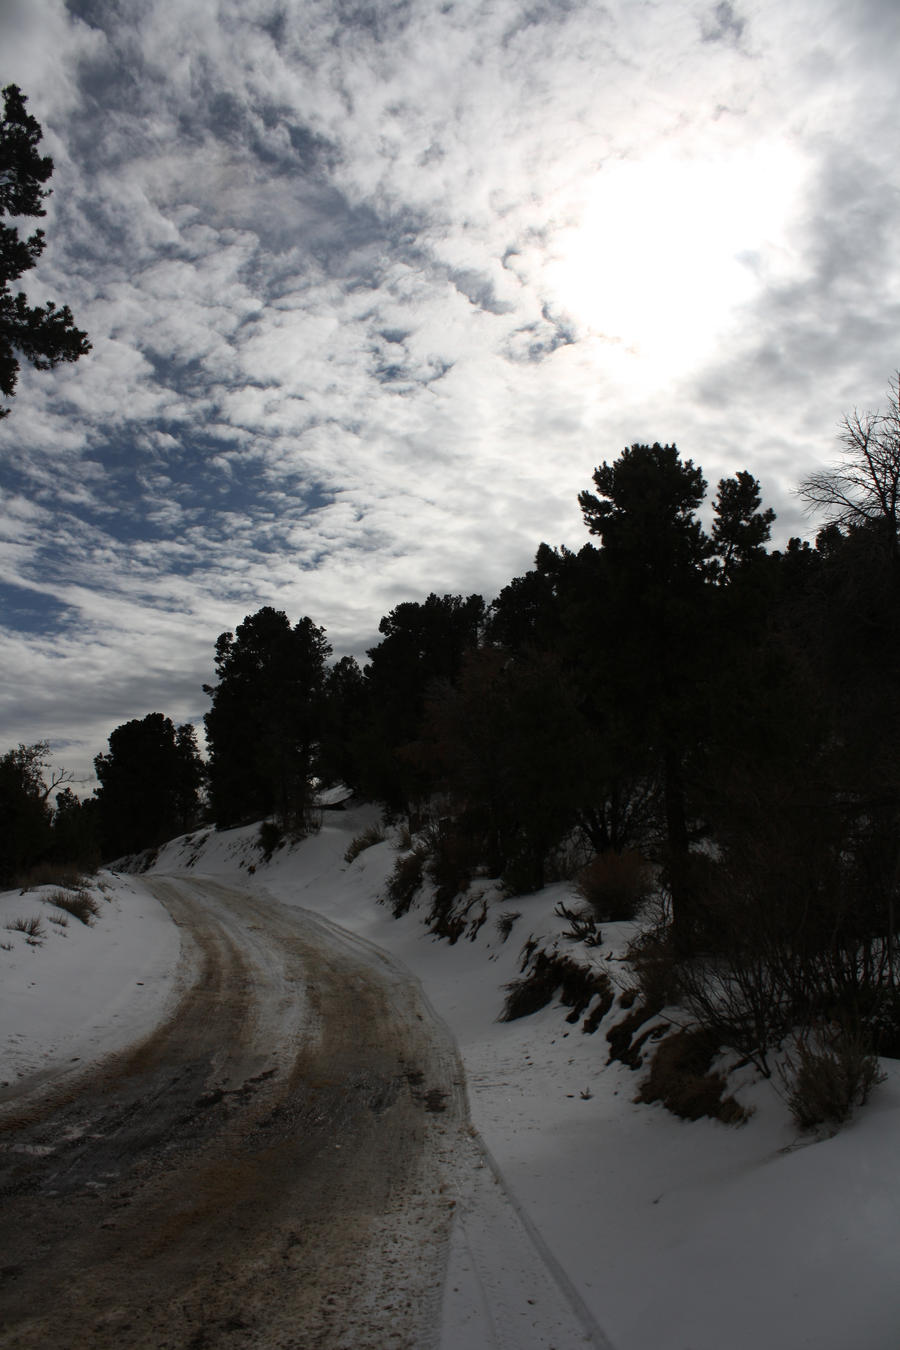 The Snowy Road